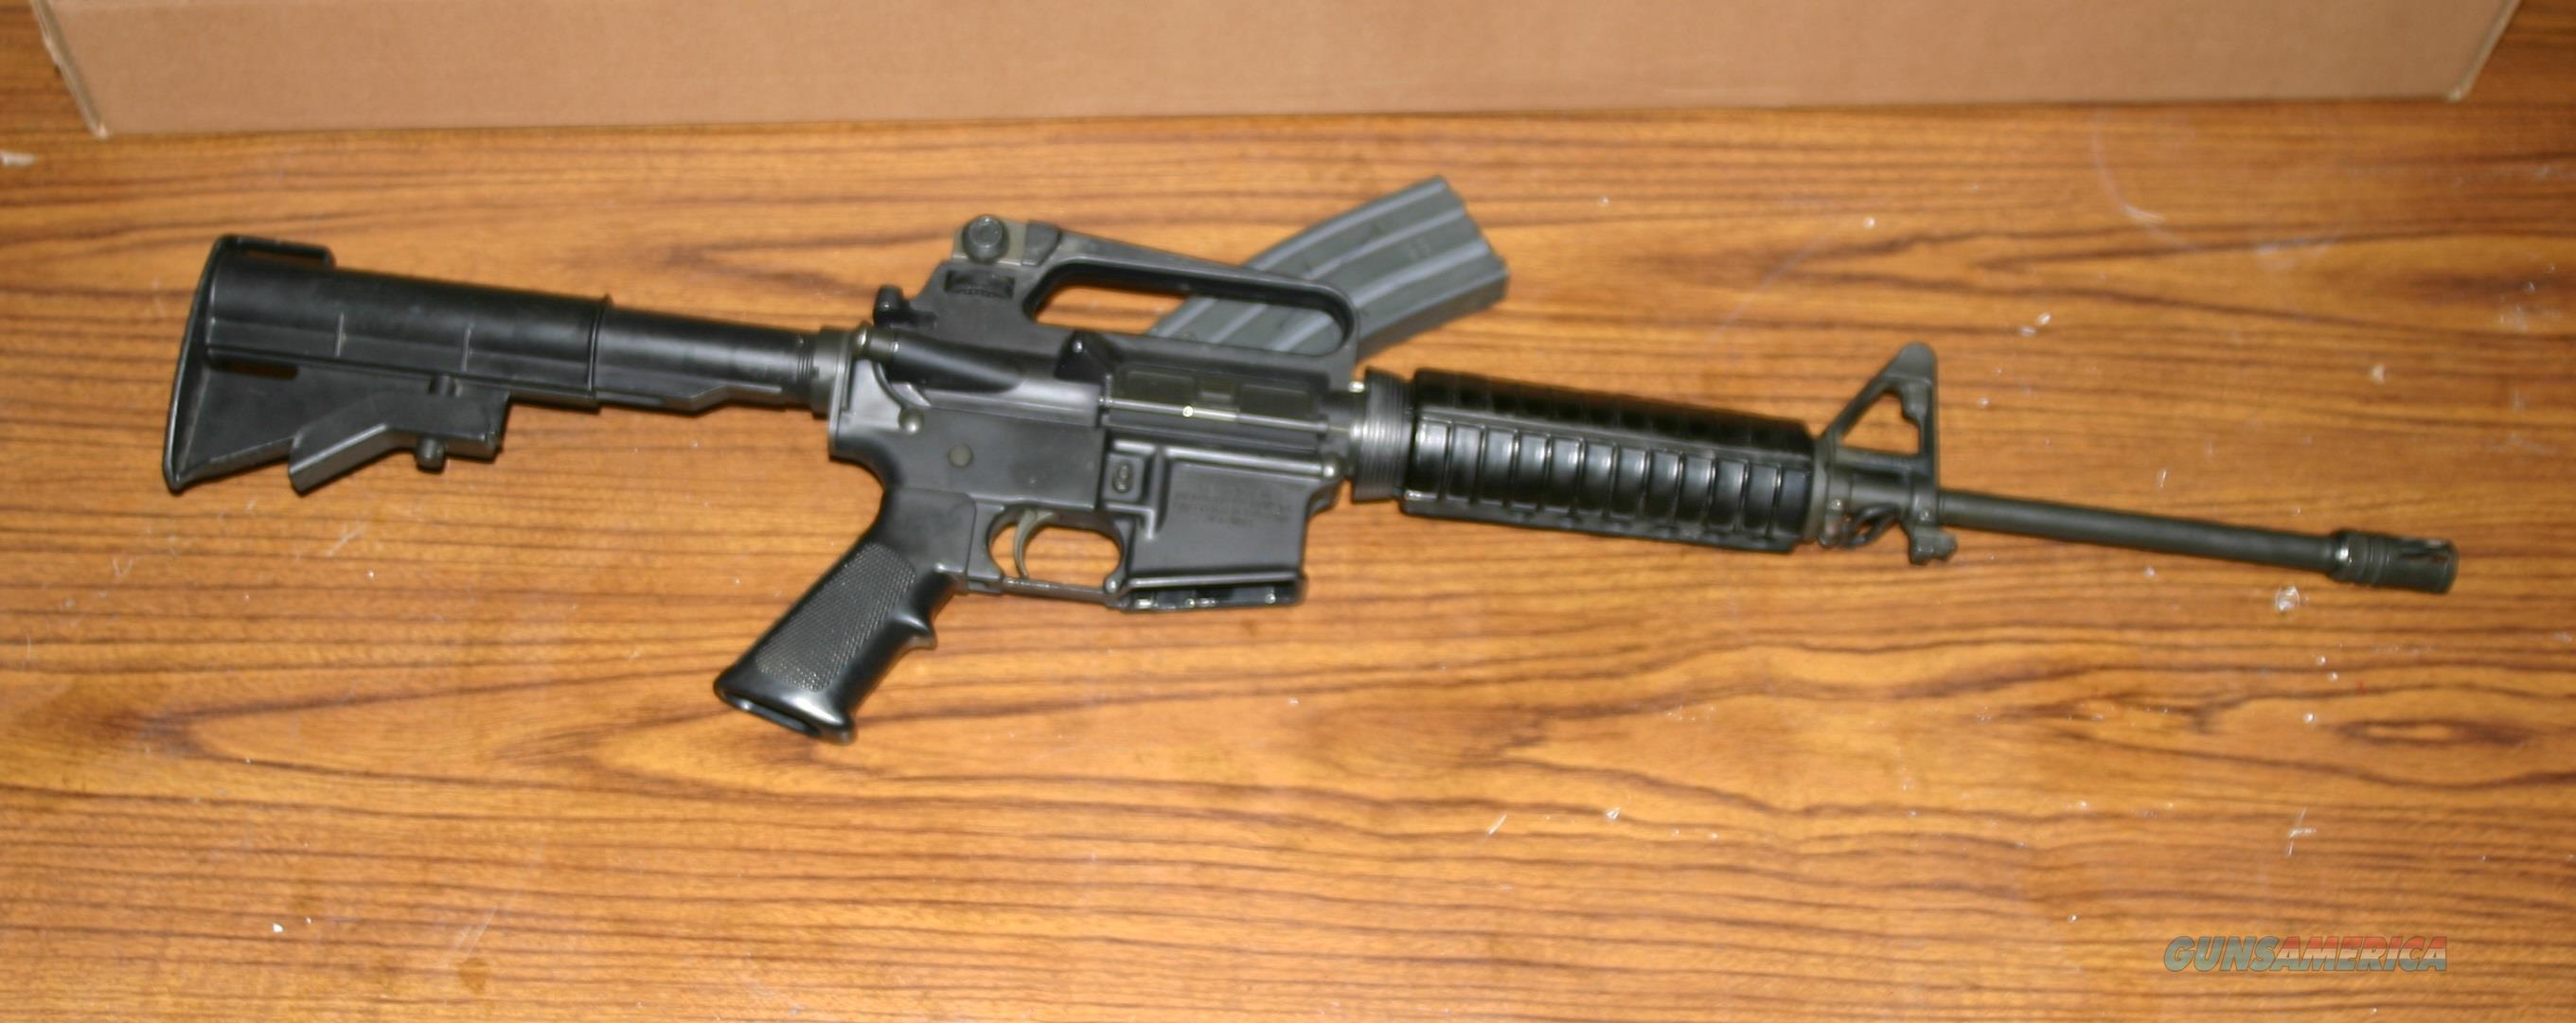 "Colt AR-15 A2 AR15 ""RESTRICTED MILITARY LE EXPORT""  Guns > Rifles > Colt Military/Tactical Rifles"